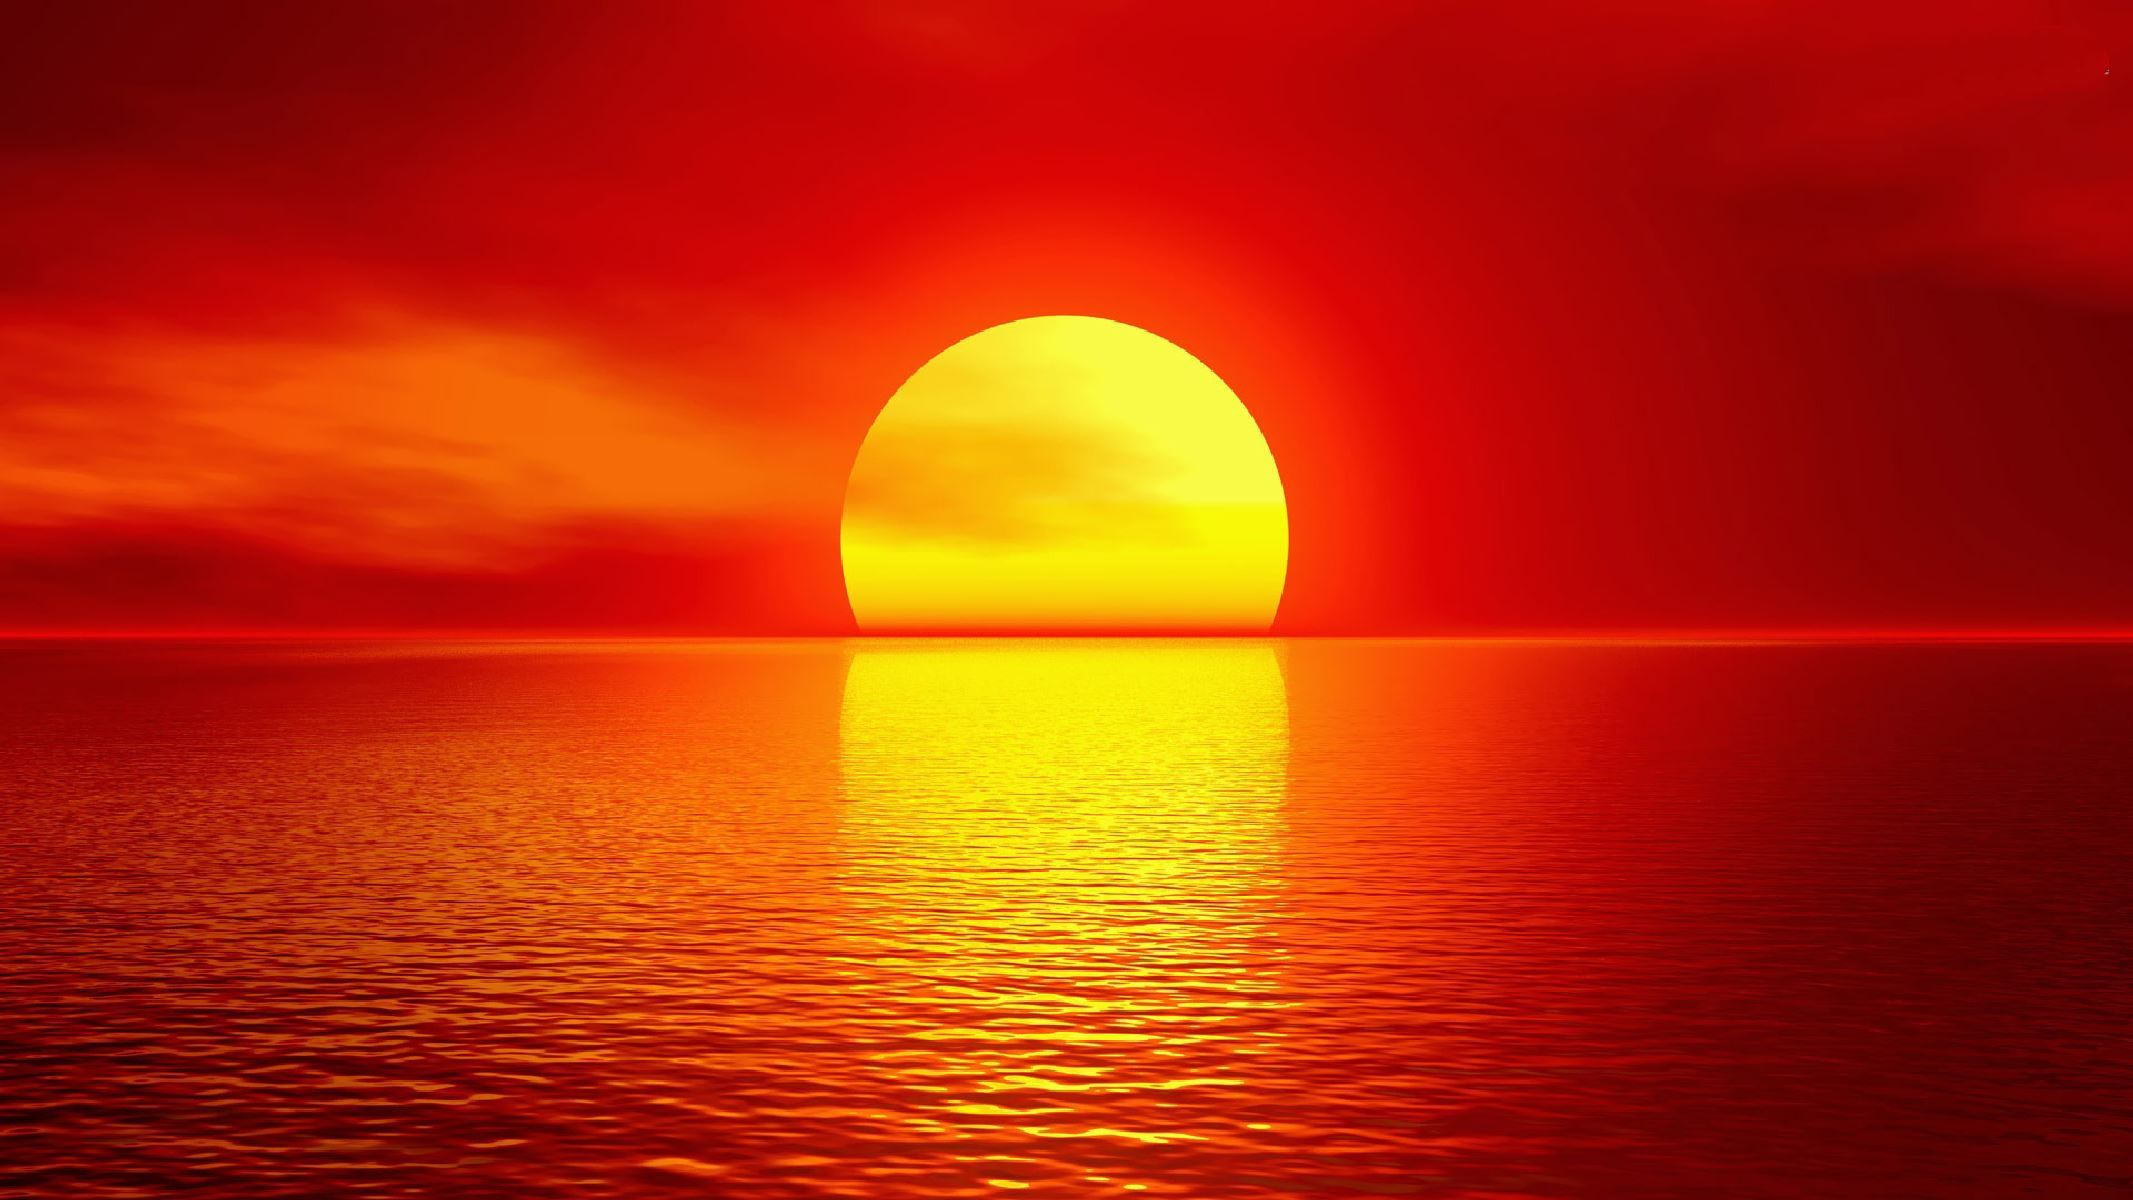 36 Sunset HD Wallpapers | Backgrounds - Wallpaper Abyss